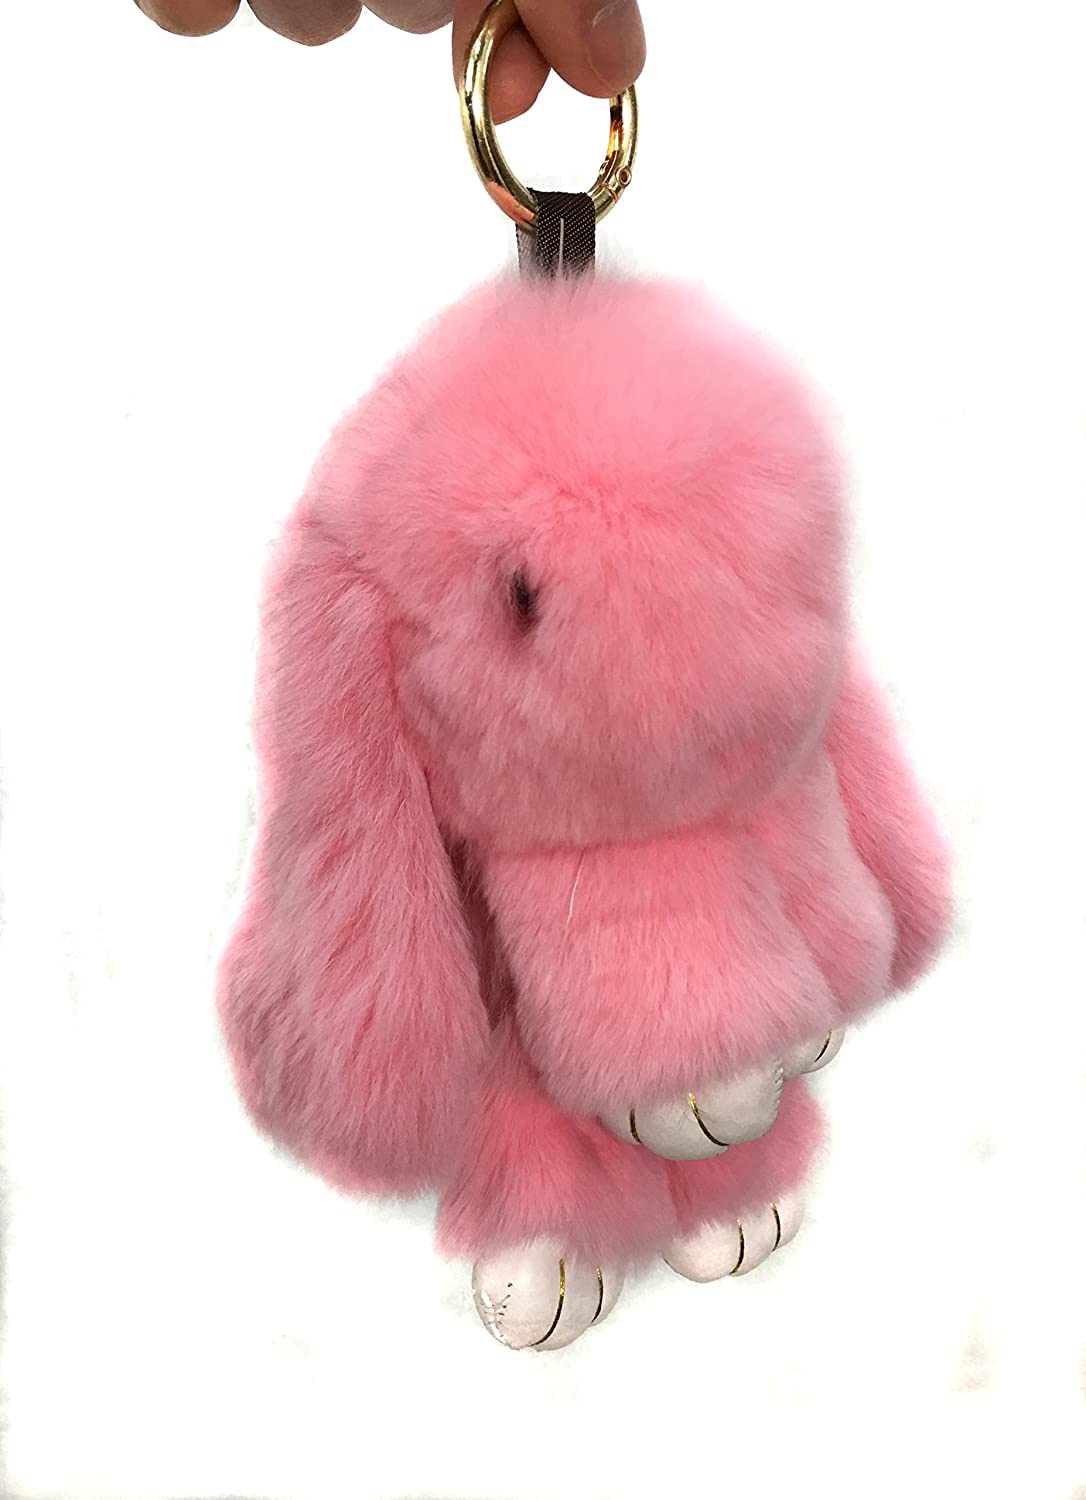 Rex Rabbit Fur Keychain Cute Rabbit Doll Keychain Pendant RRD-0011